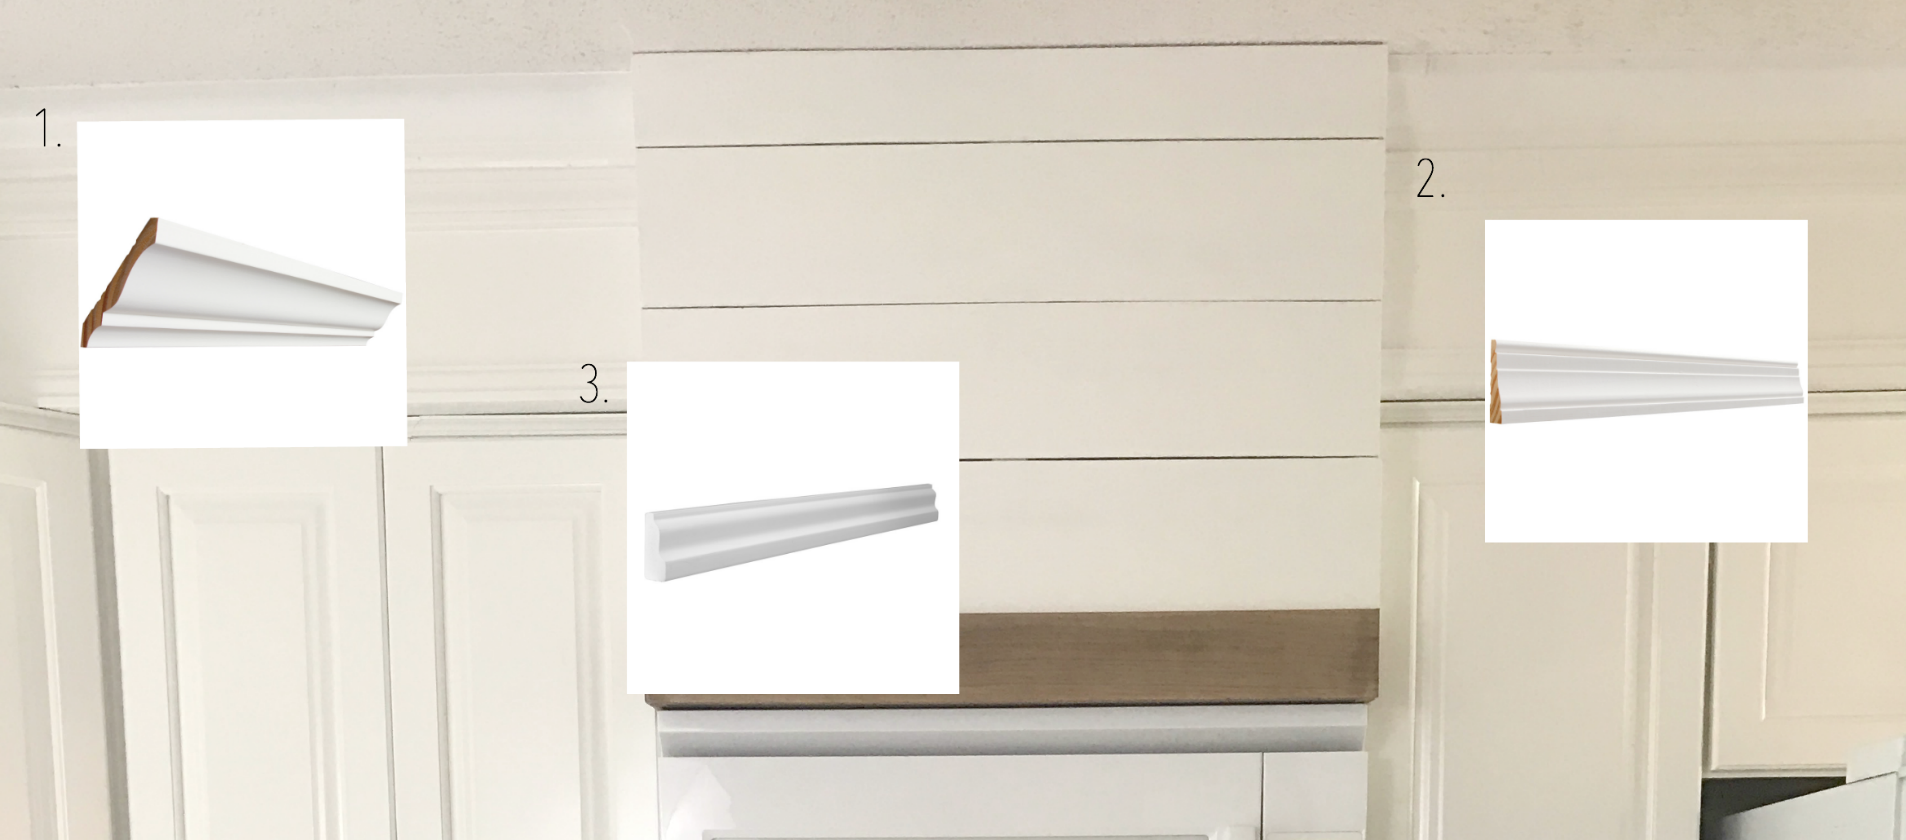 Adding Moulding to Soffit to Extend Cabinets- Top of Cabinets Remodel